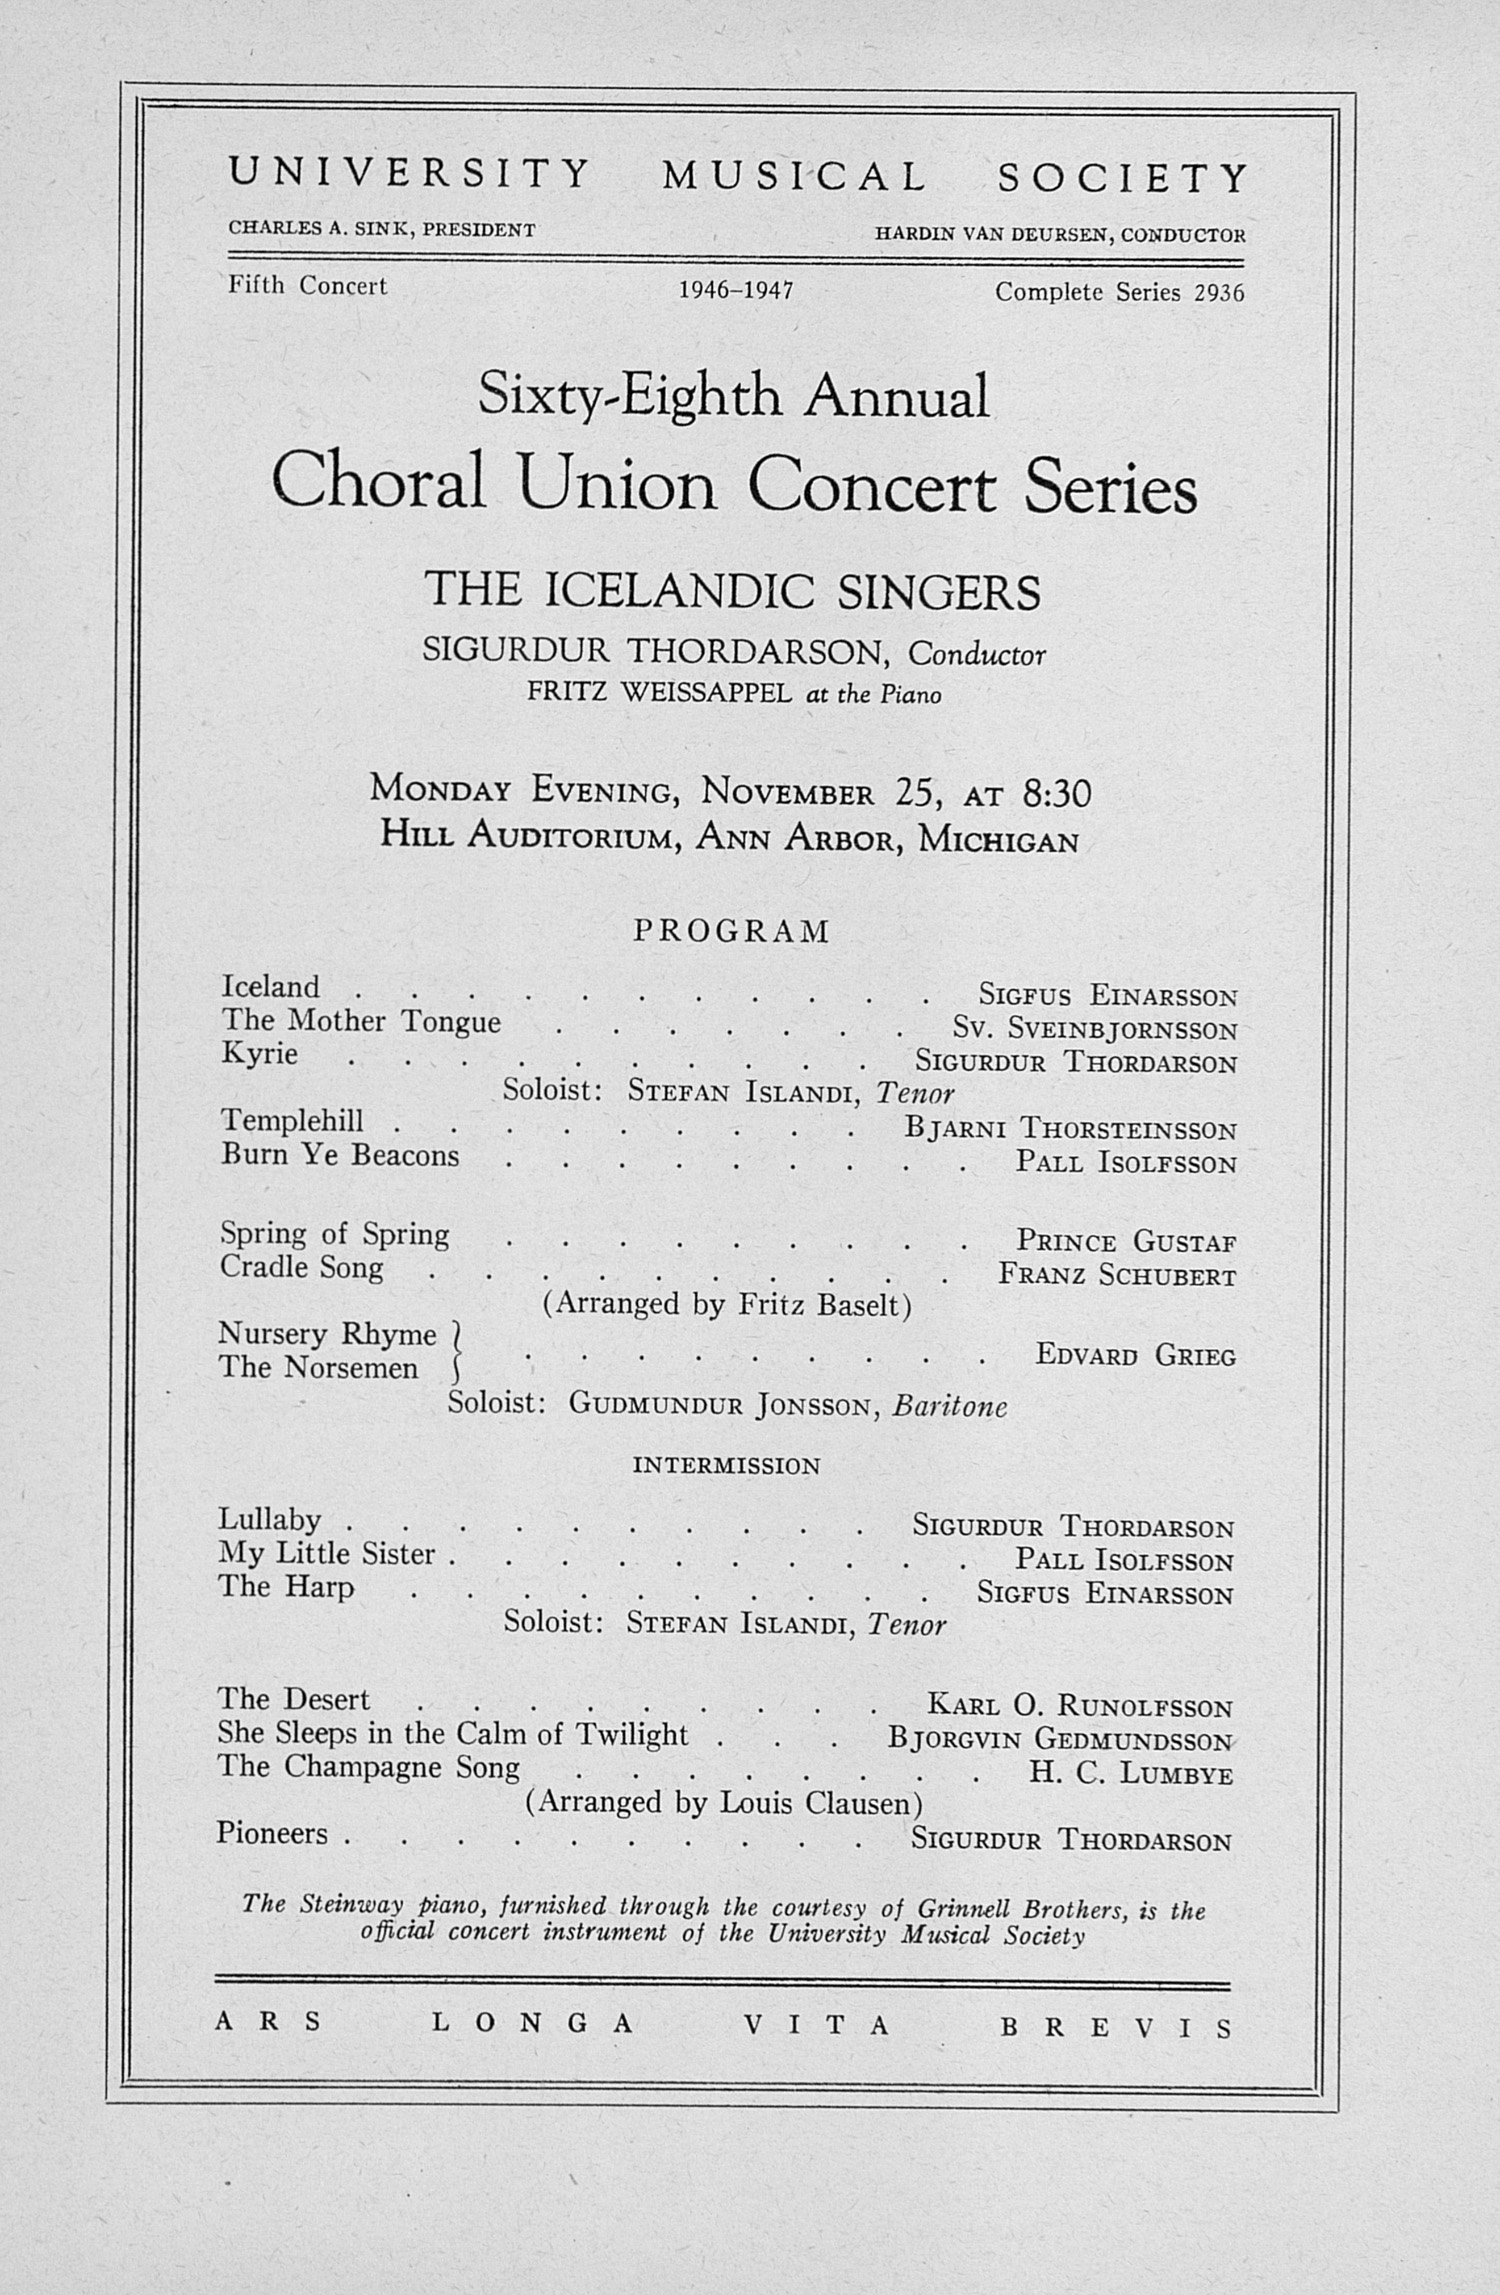 UMS Concert Program, November 25: Sixty-eighth Annual Choral Union Concert Series -- The Icelandic Singers image